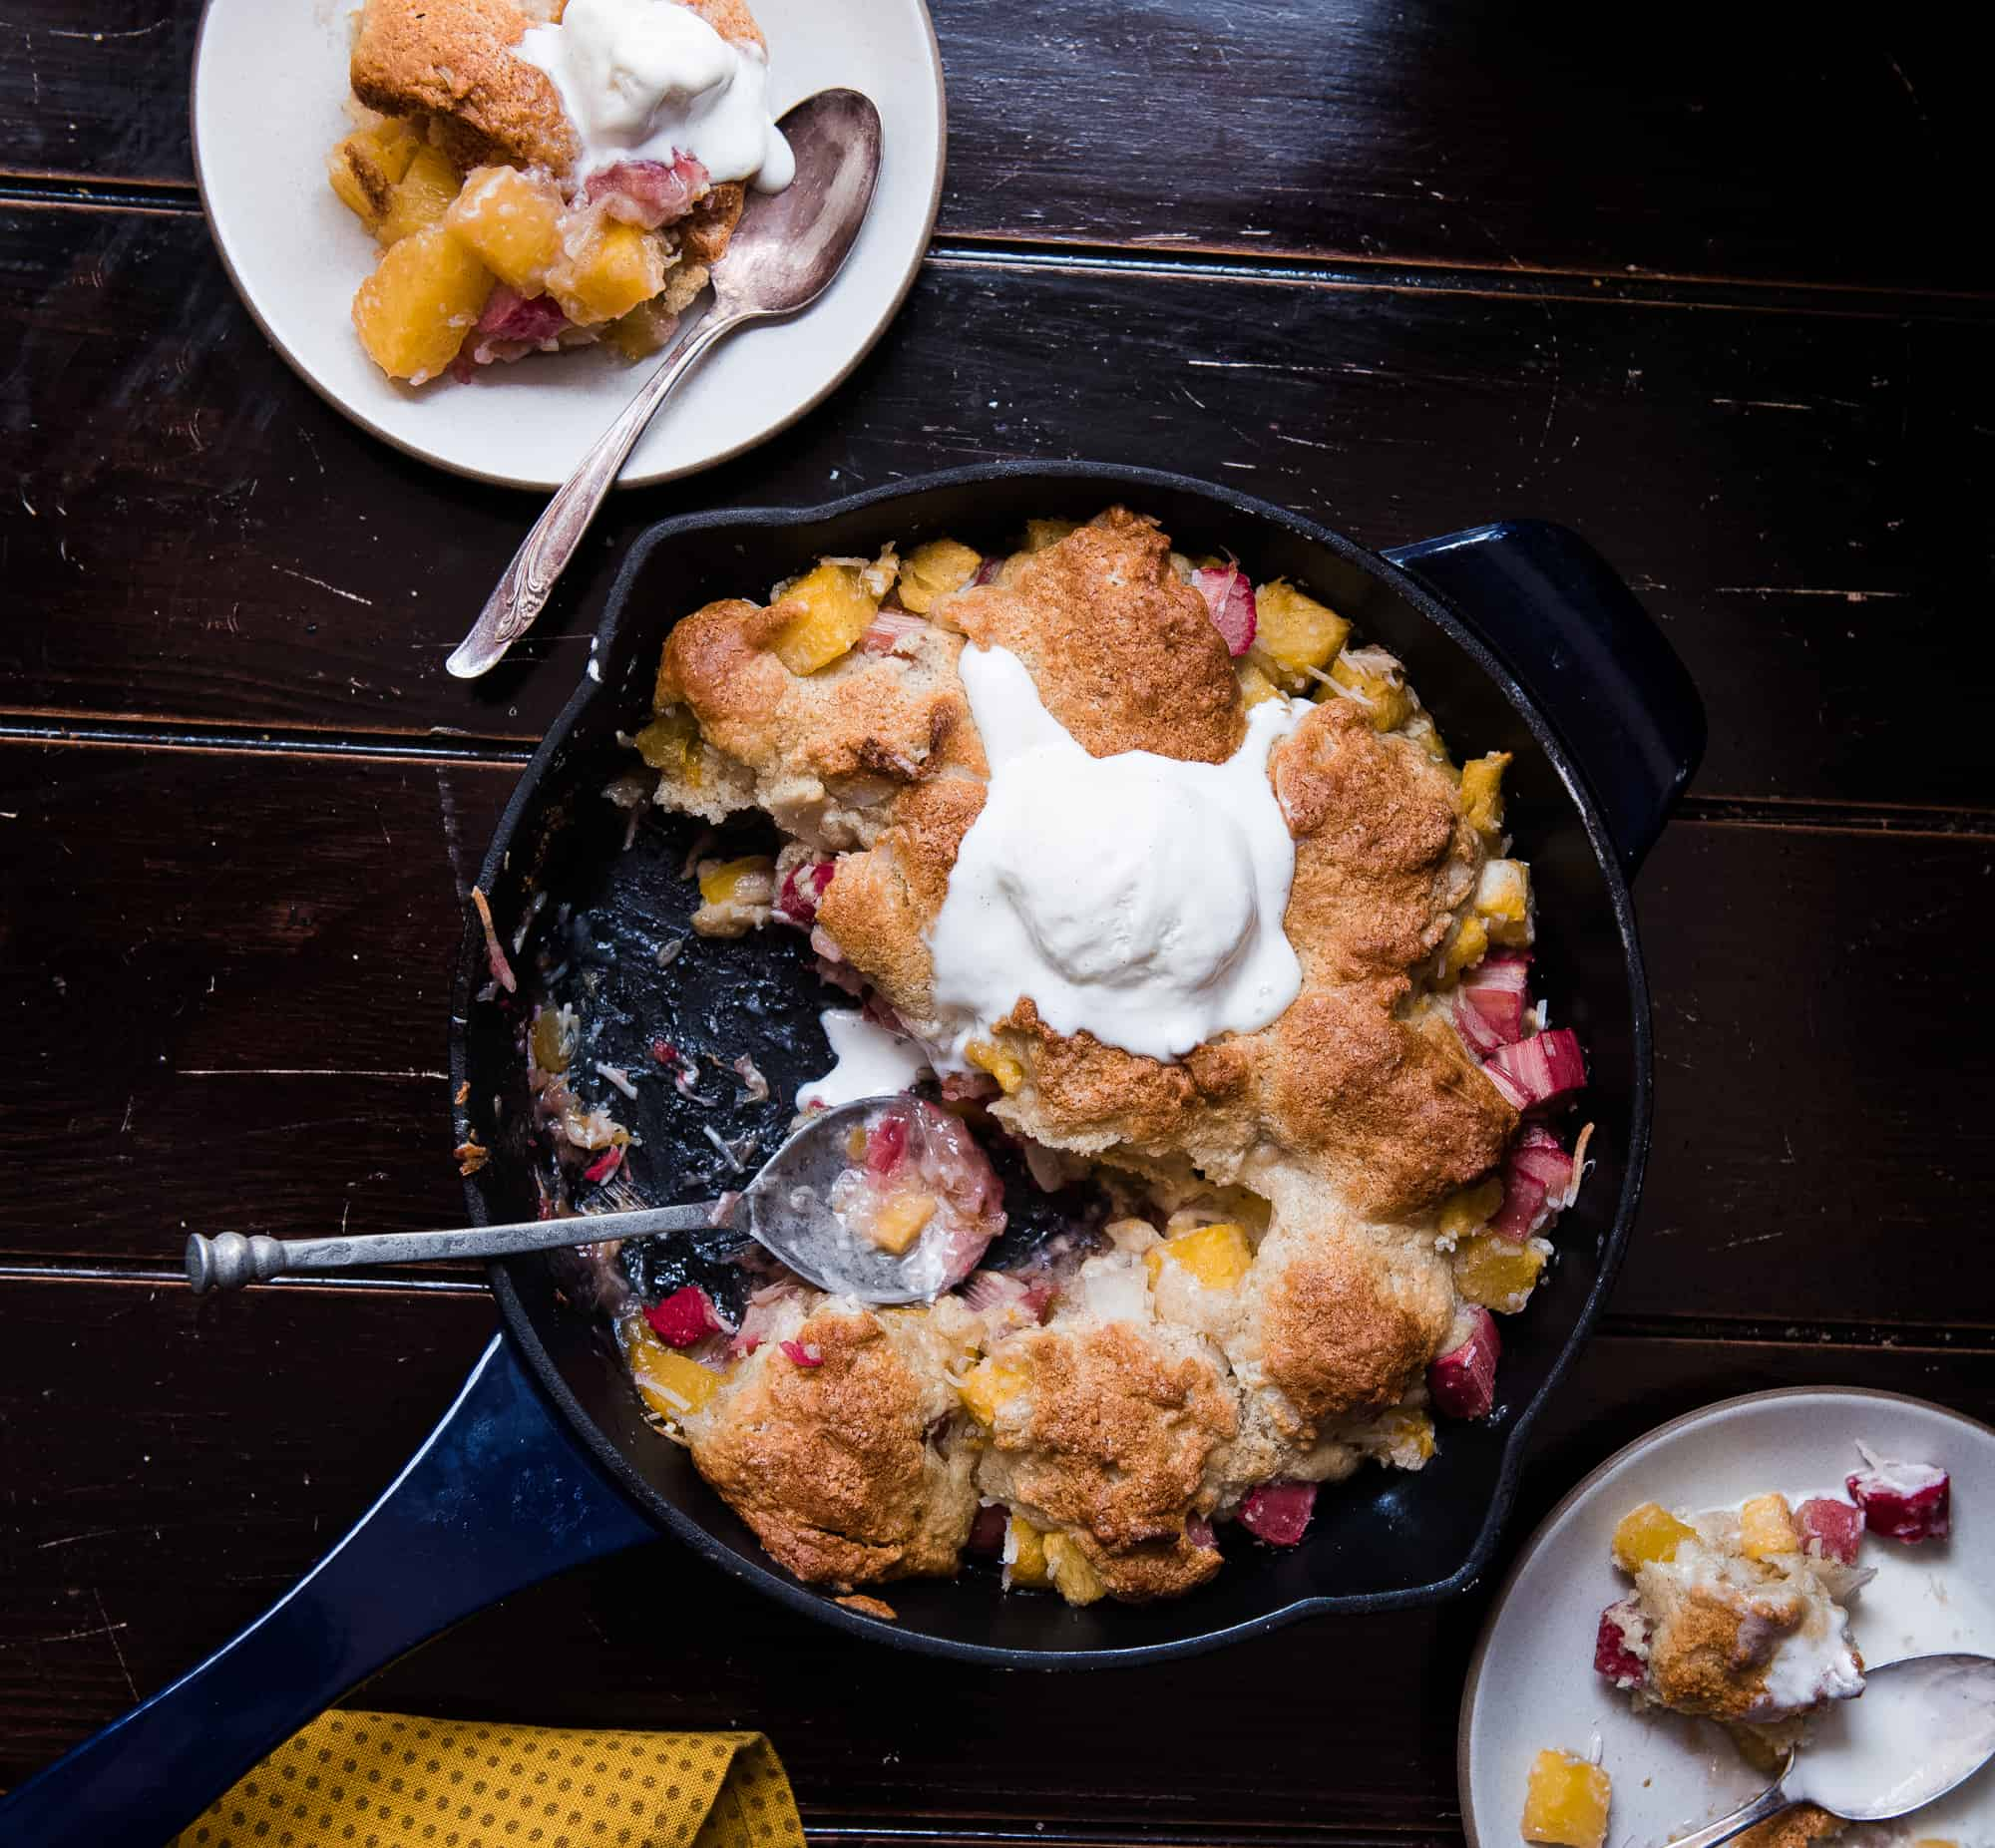 Skillet full of rhubarb pineapple cobbler next to two servings on white plates